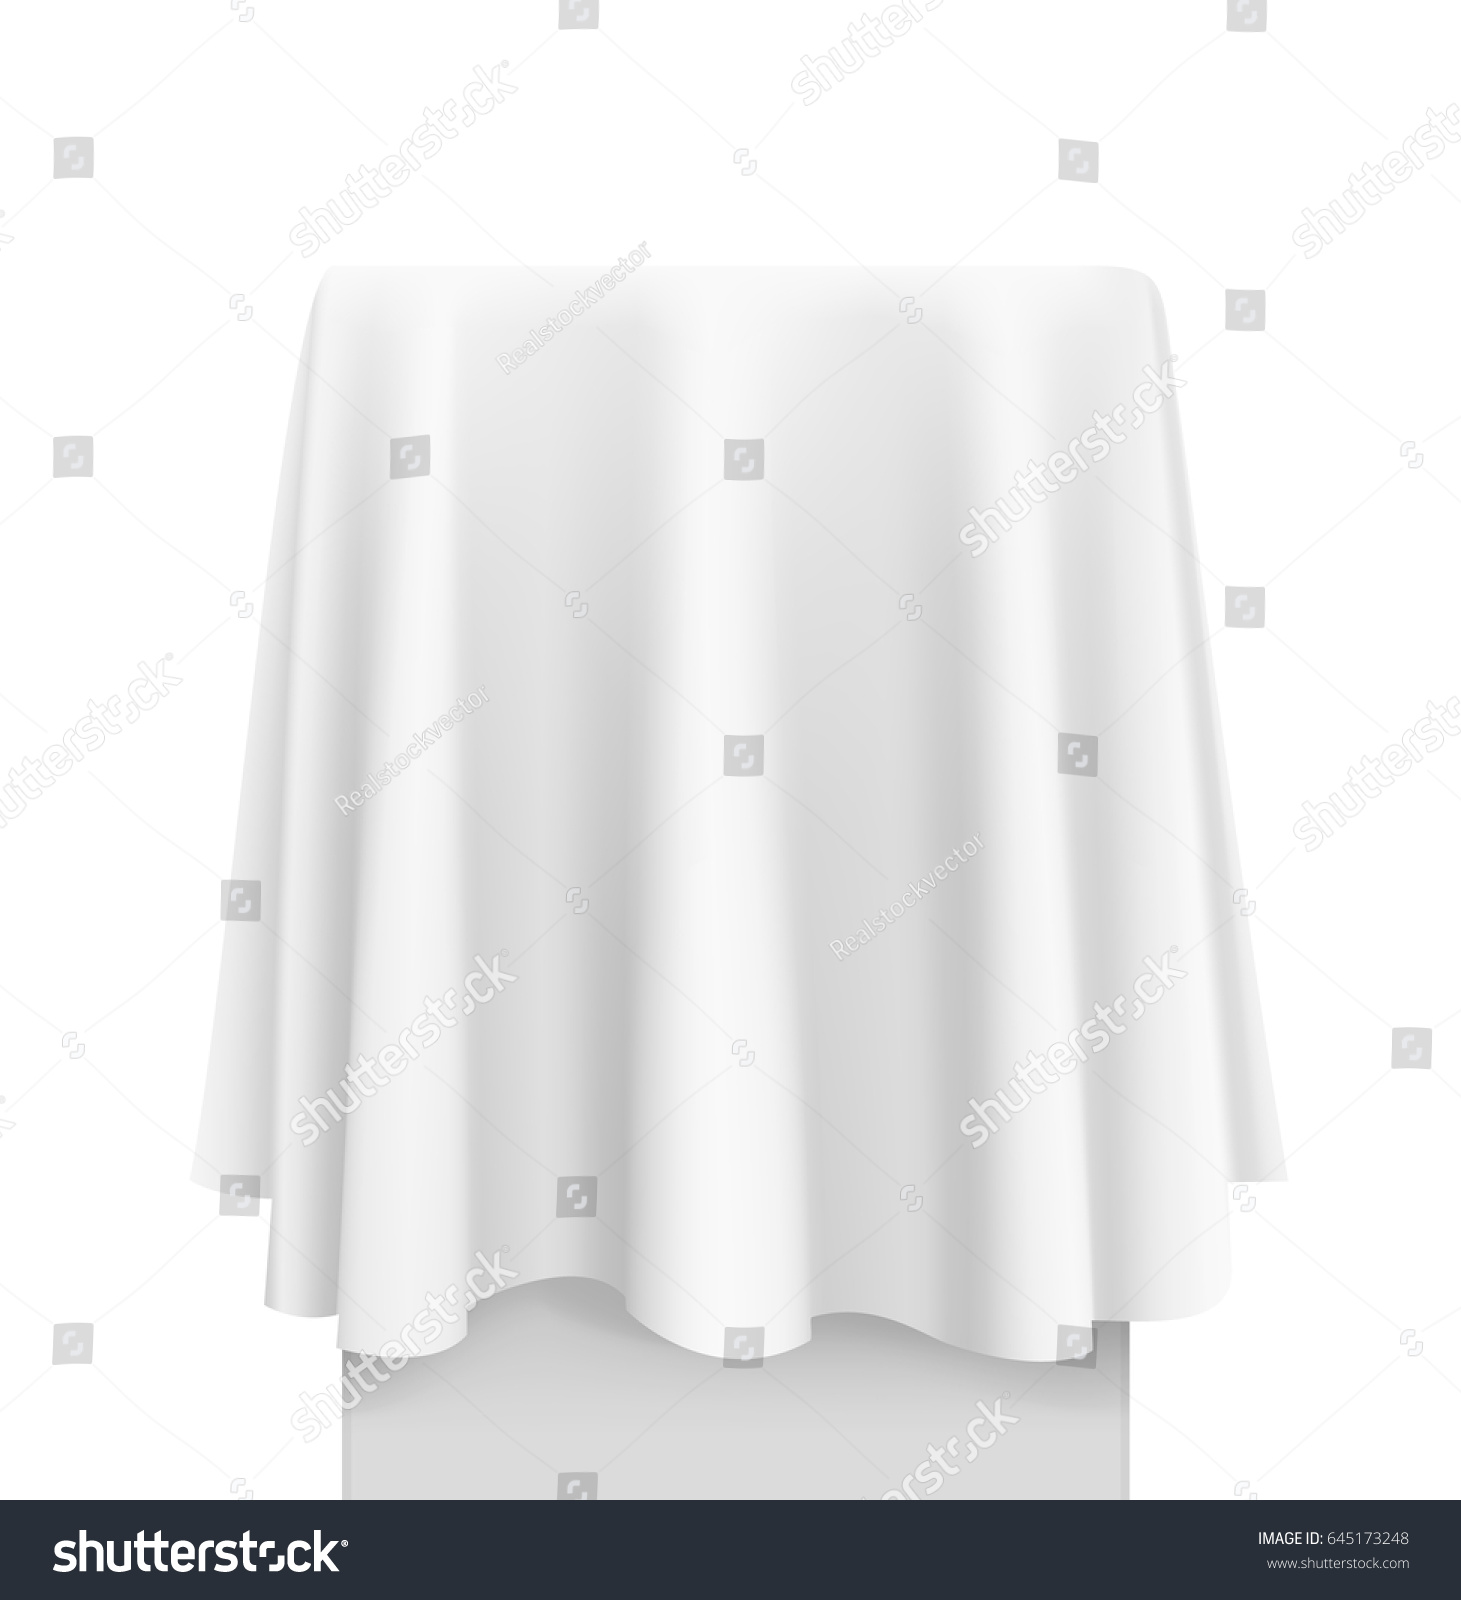 White round tablecloths cheap - White Round Tablecloth Draped Over A Table Vector Illustration On White Background